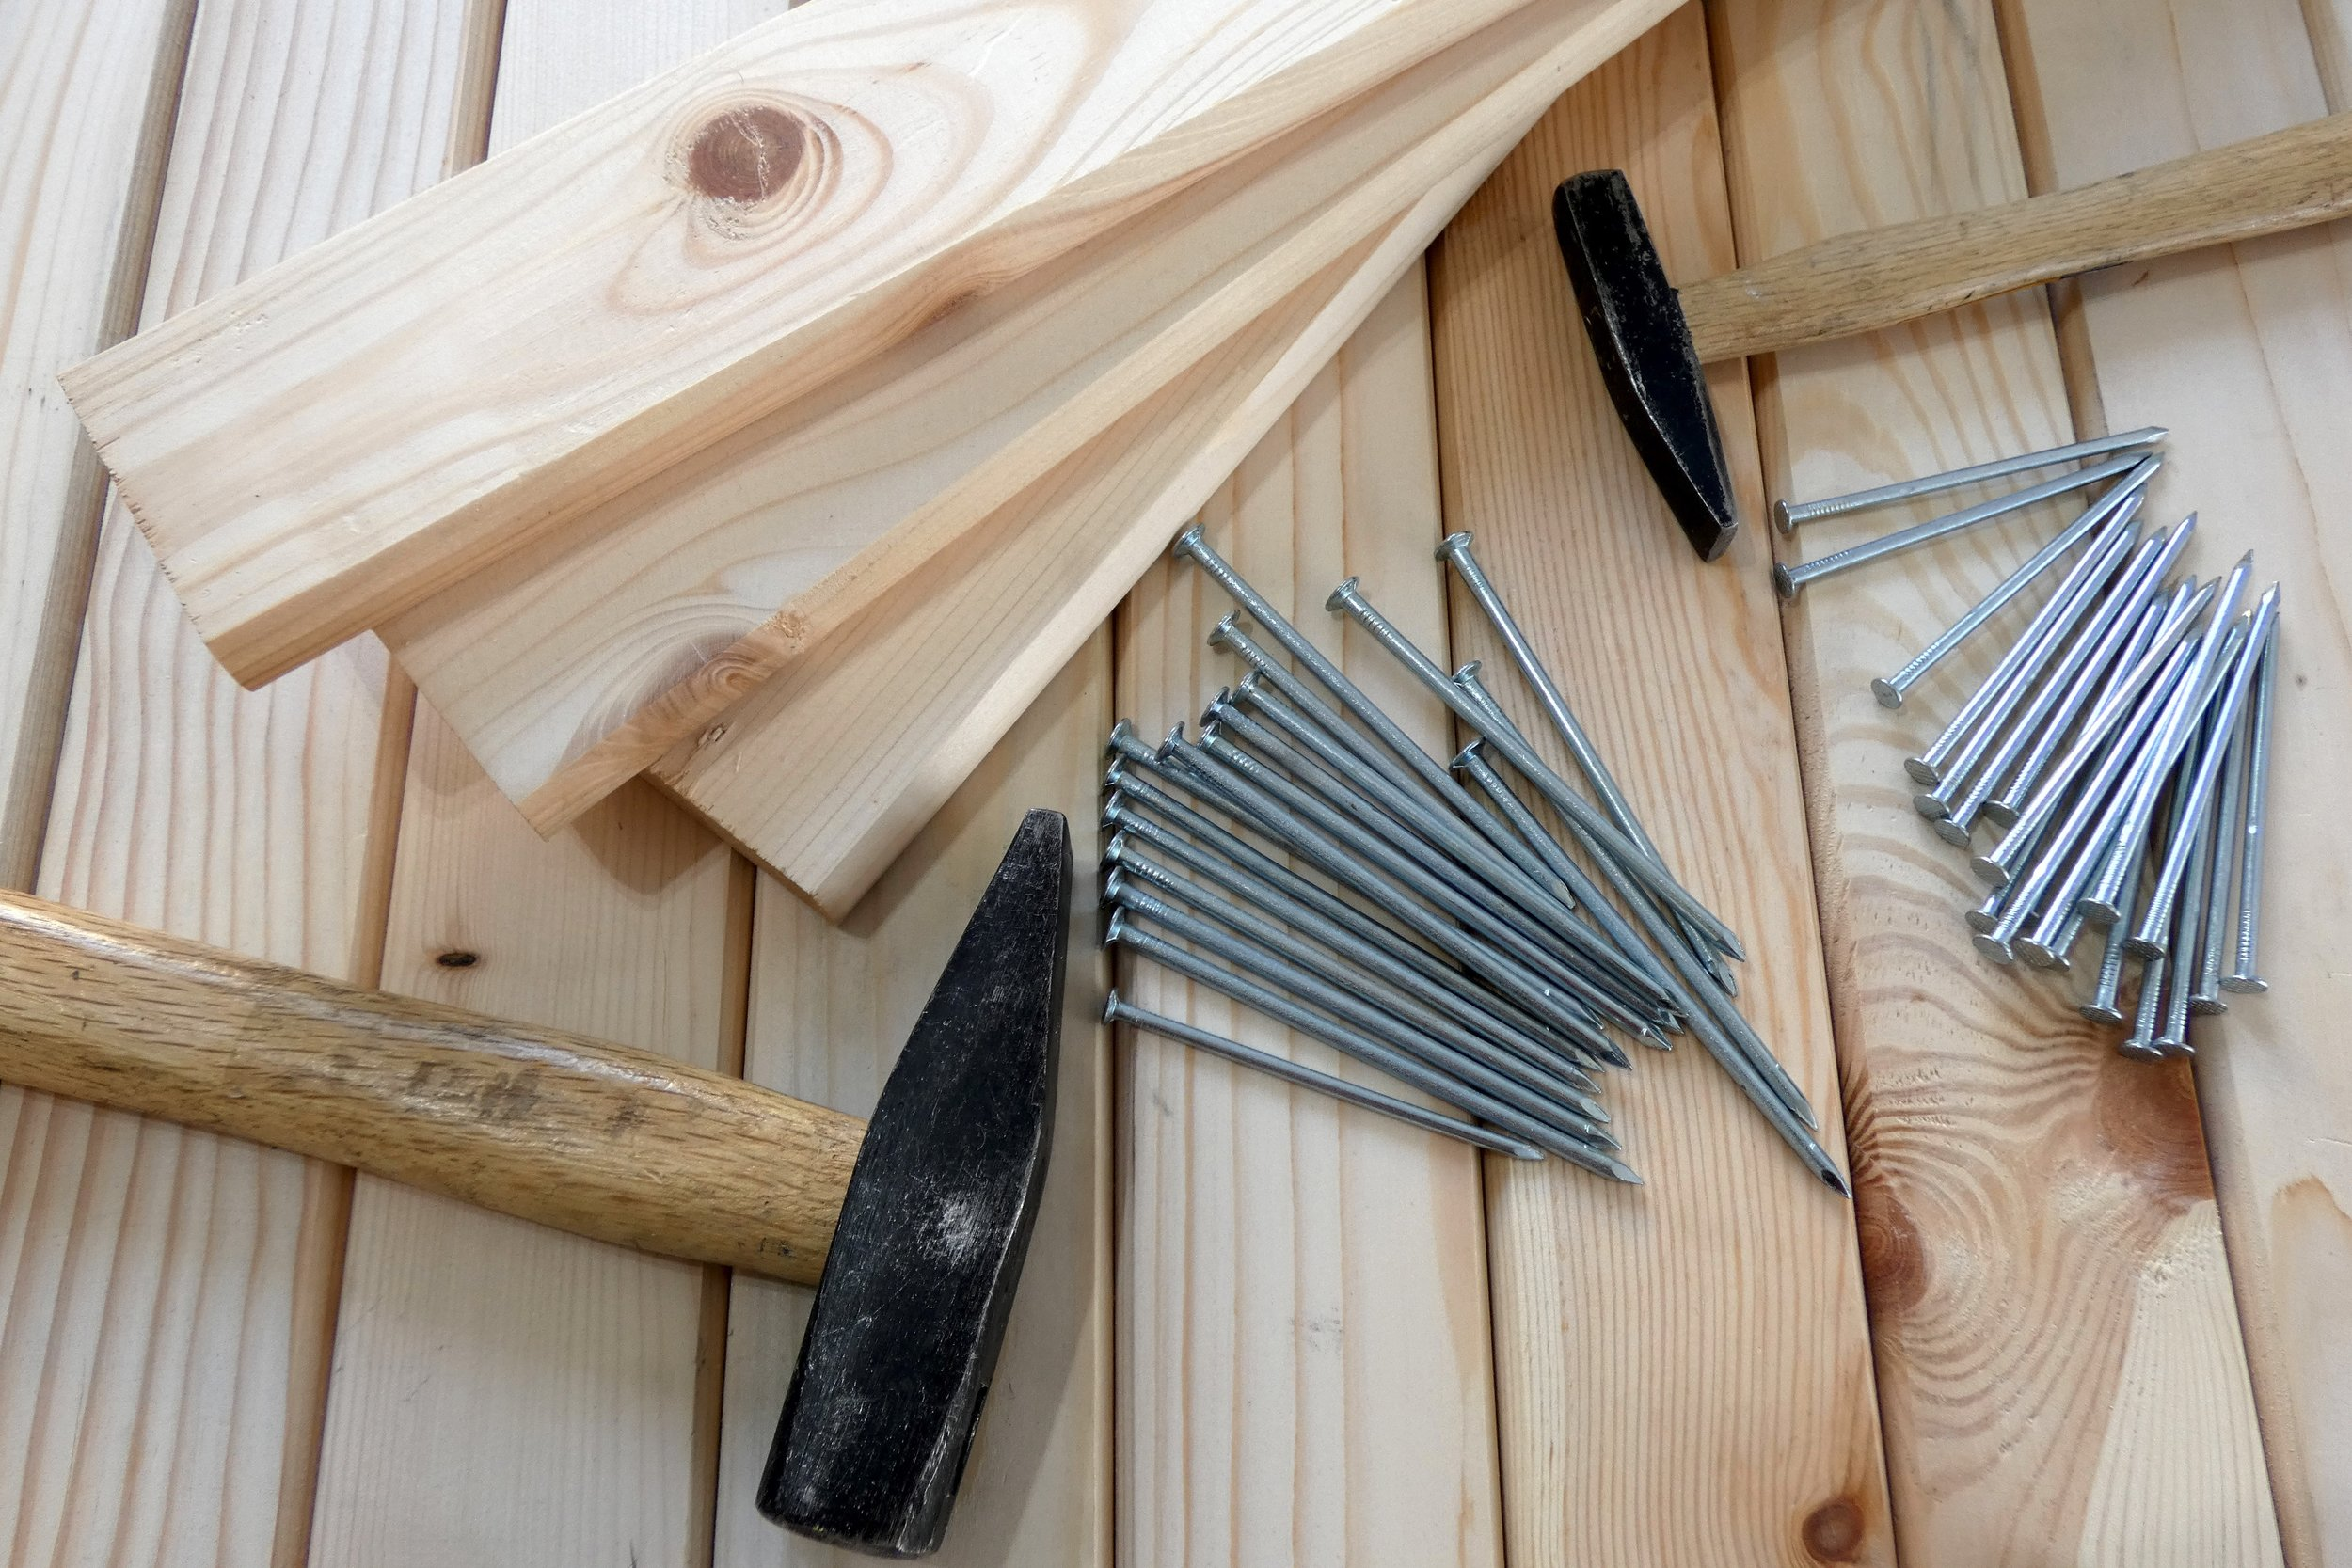 build-carpentry-close-up-1598213.jpg